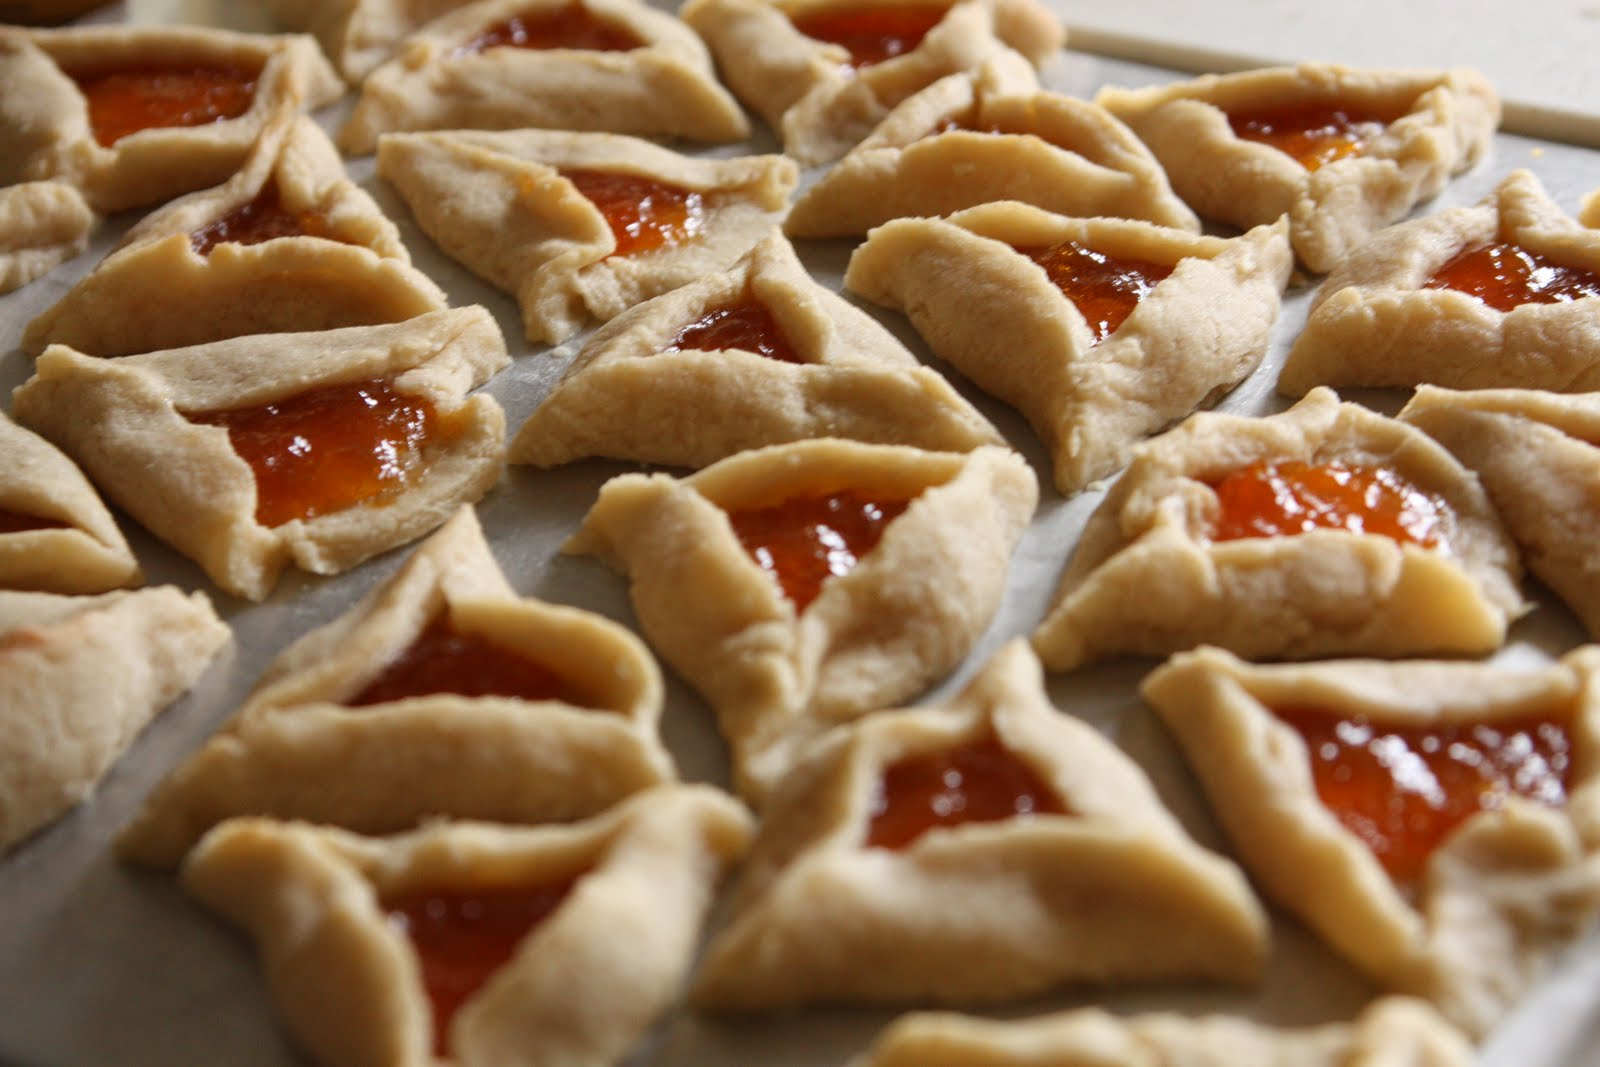 In My Vegan Life: VeganMoFo: Mom's Hamantaschen